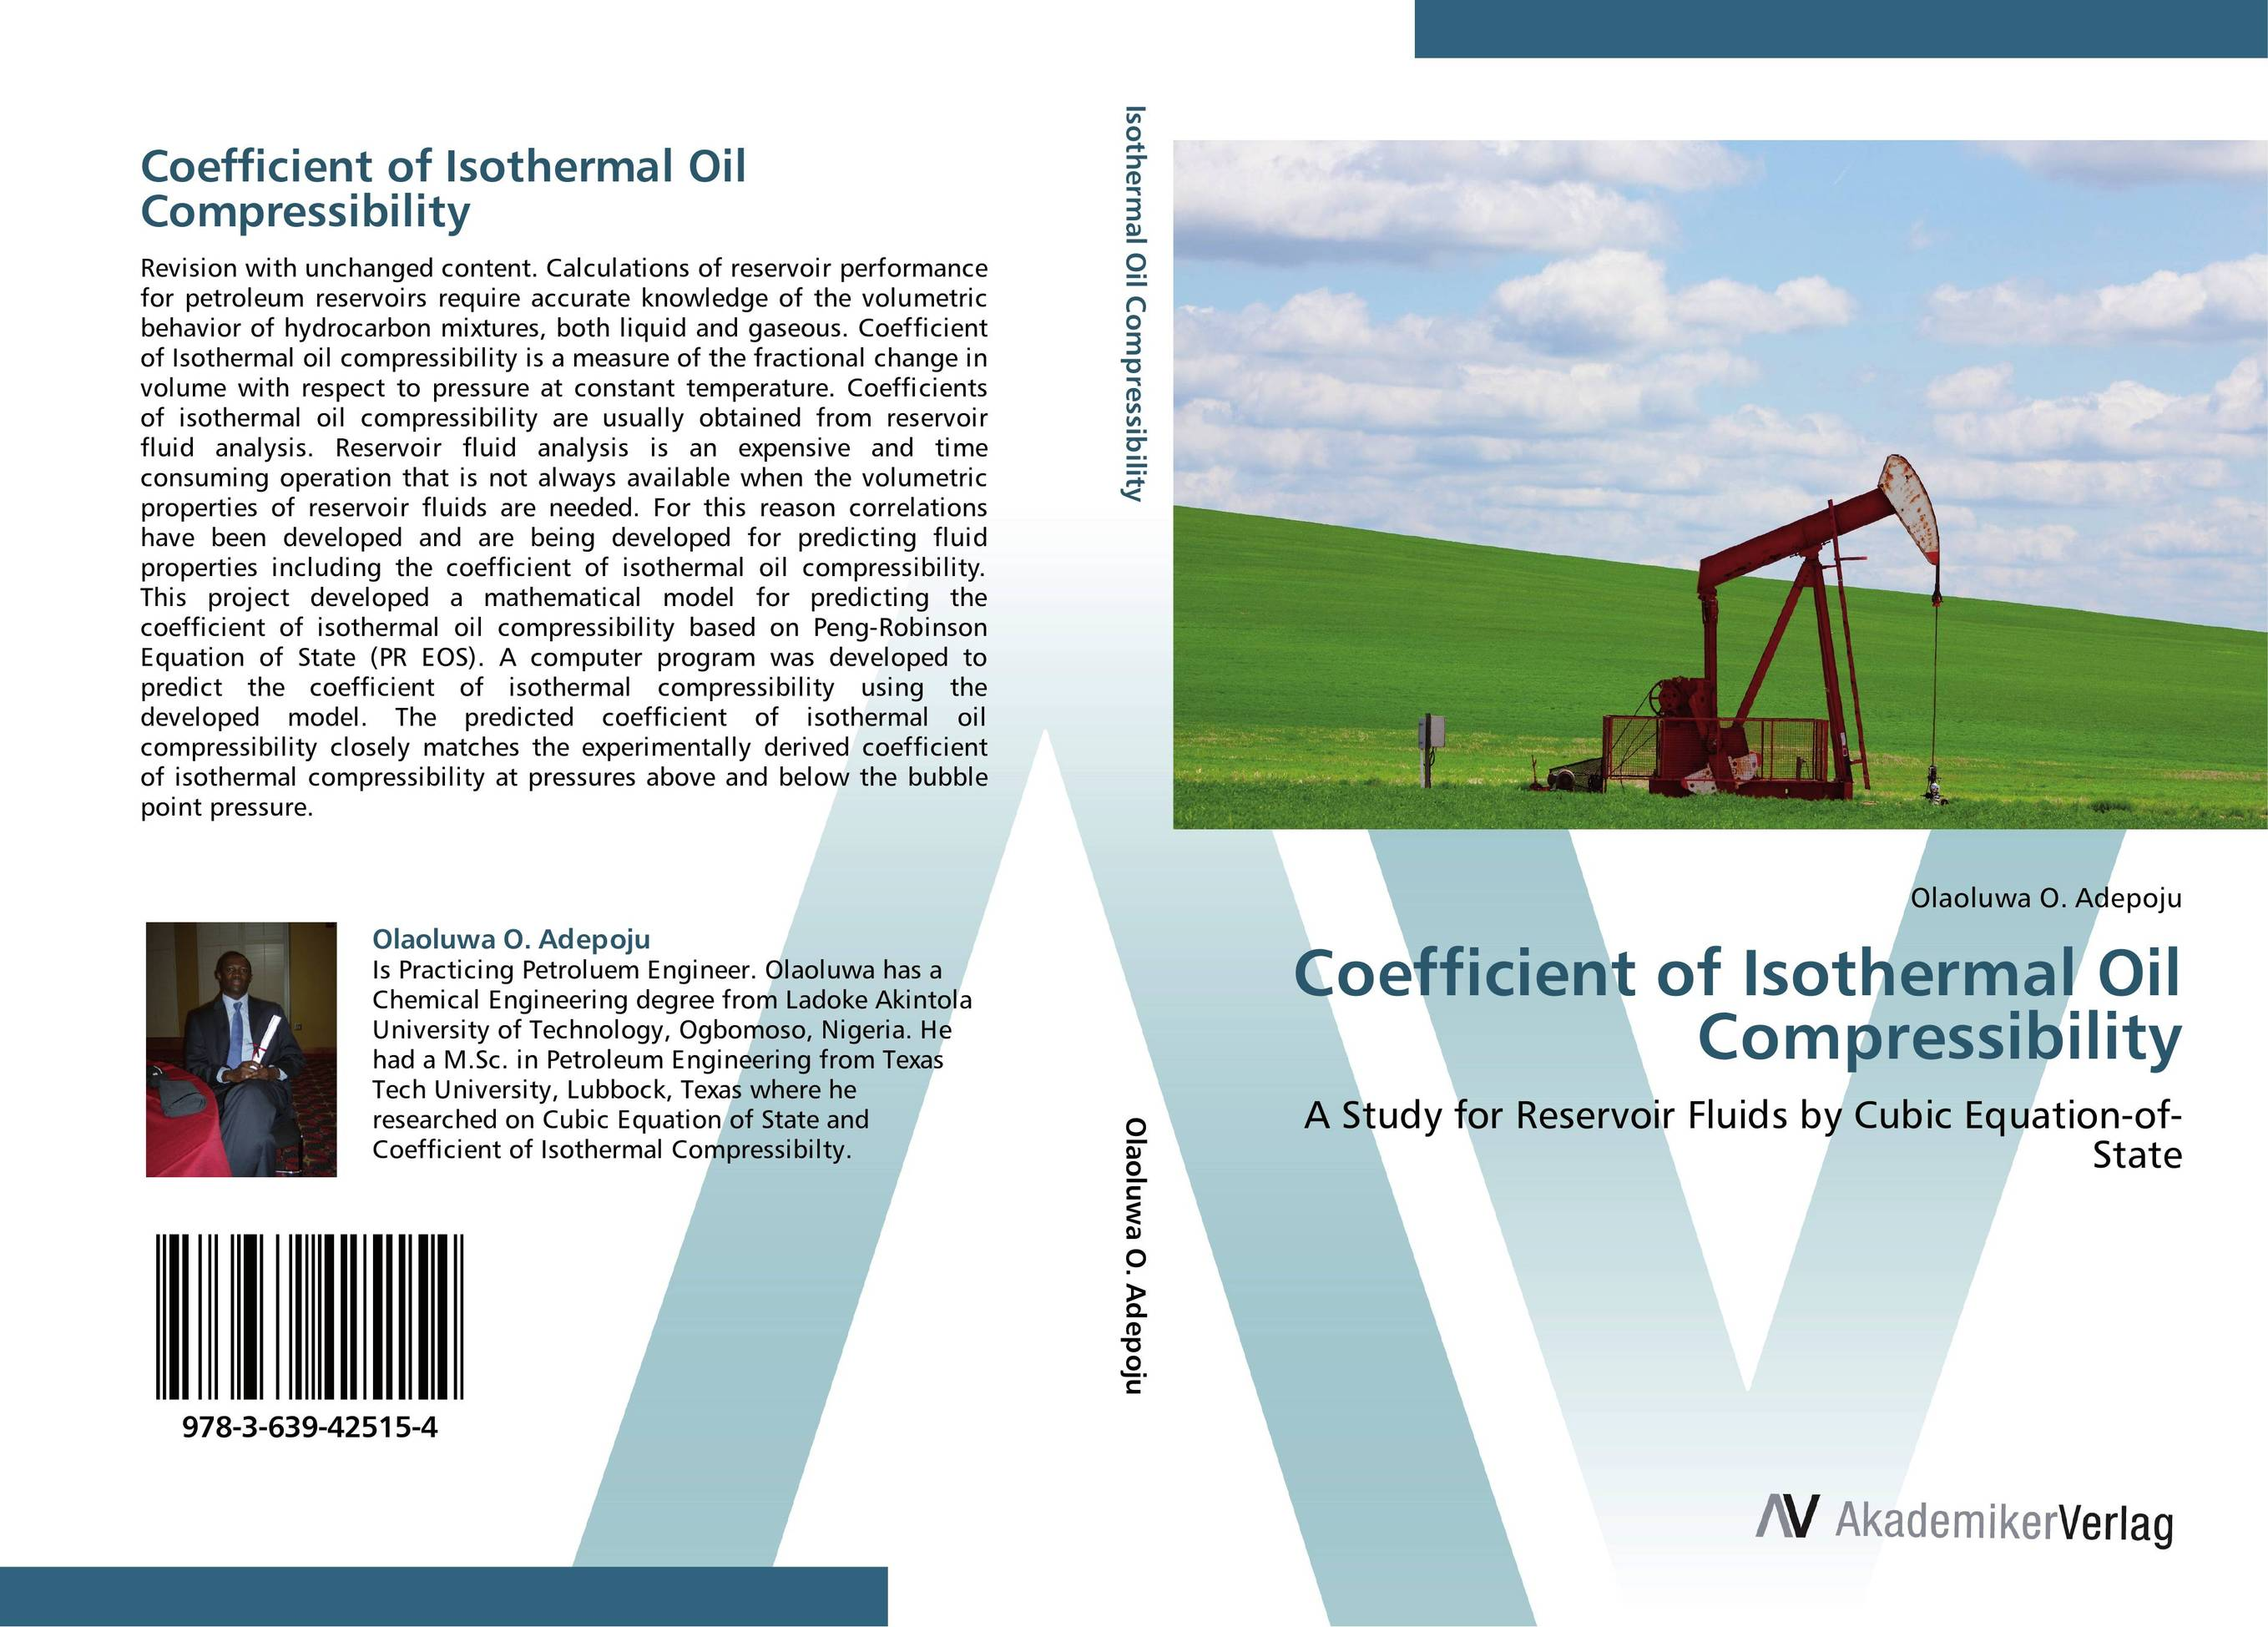 Coefficient of Isothermal Oil Compressibility tarek ahmed working guide to reservoir rock properties and fluid flow